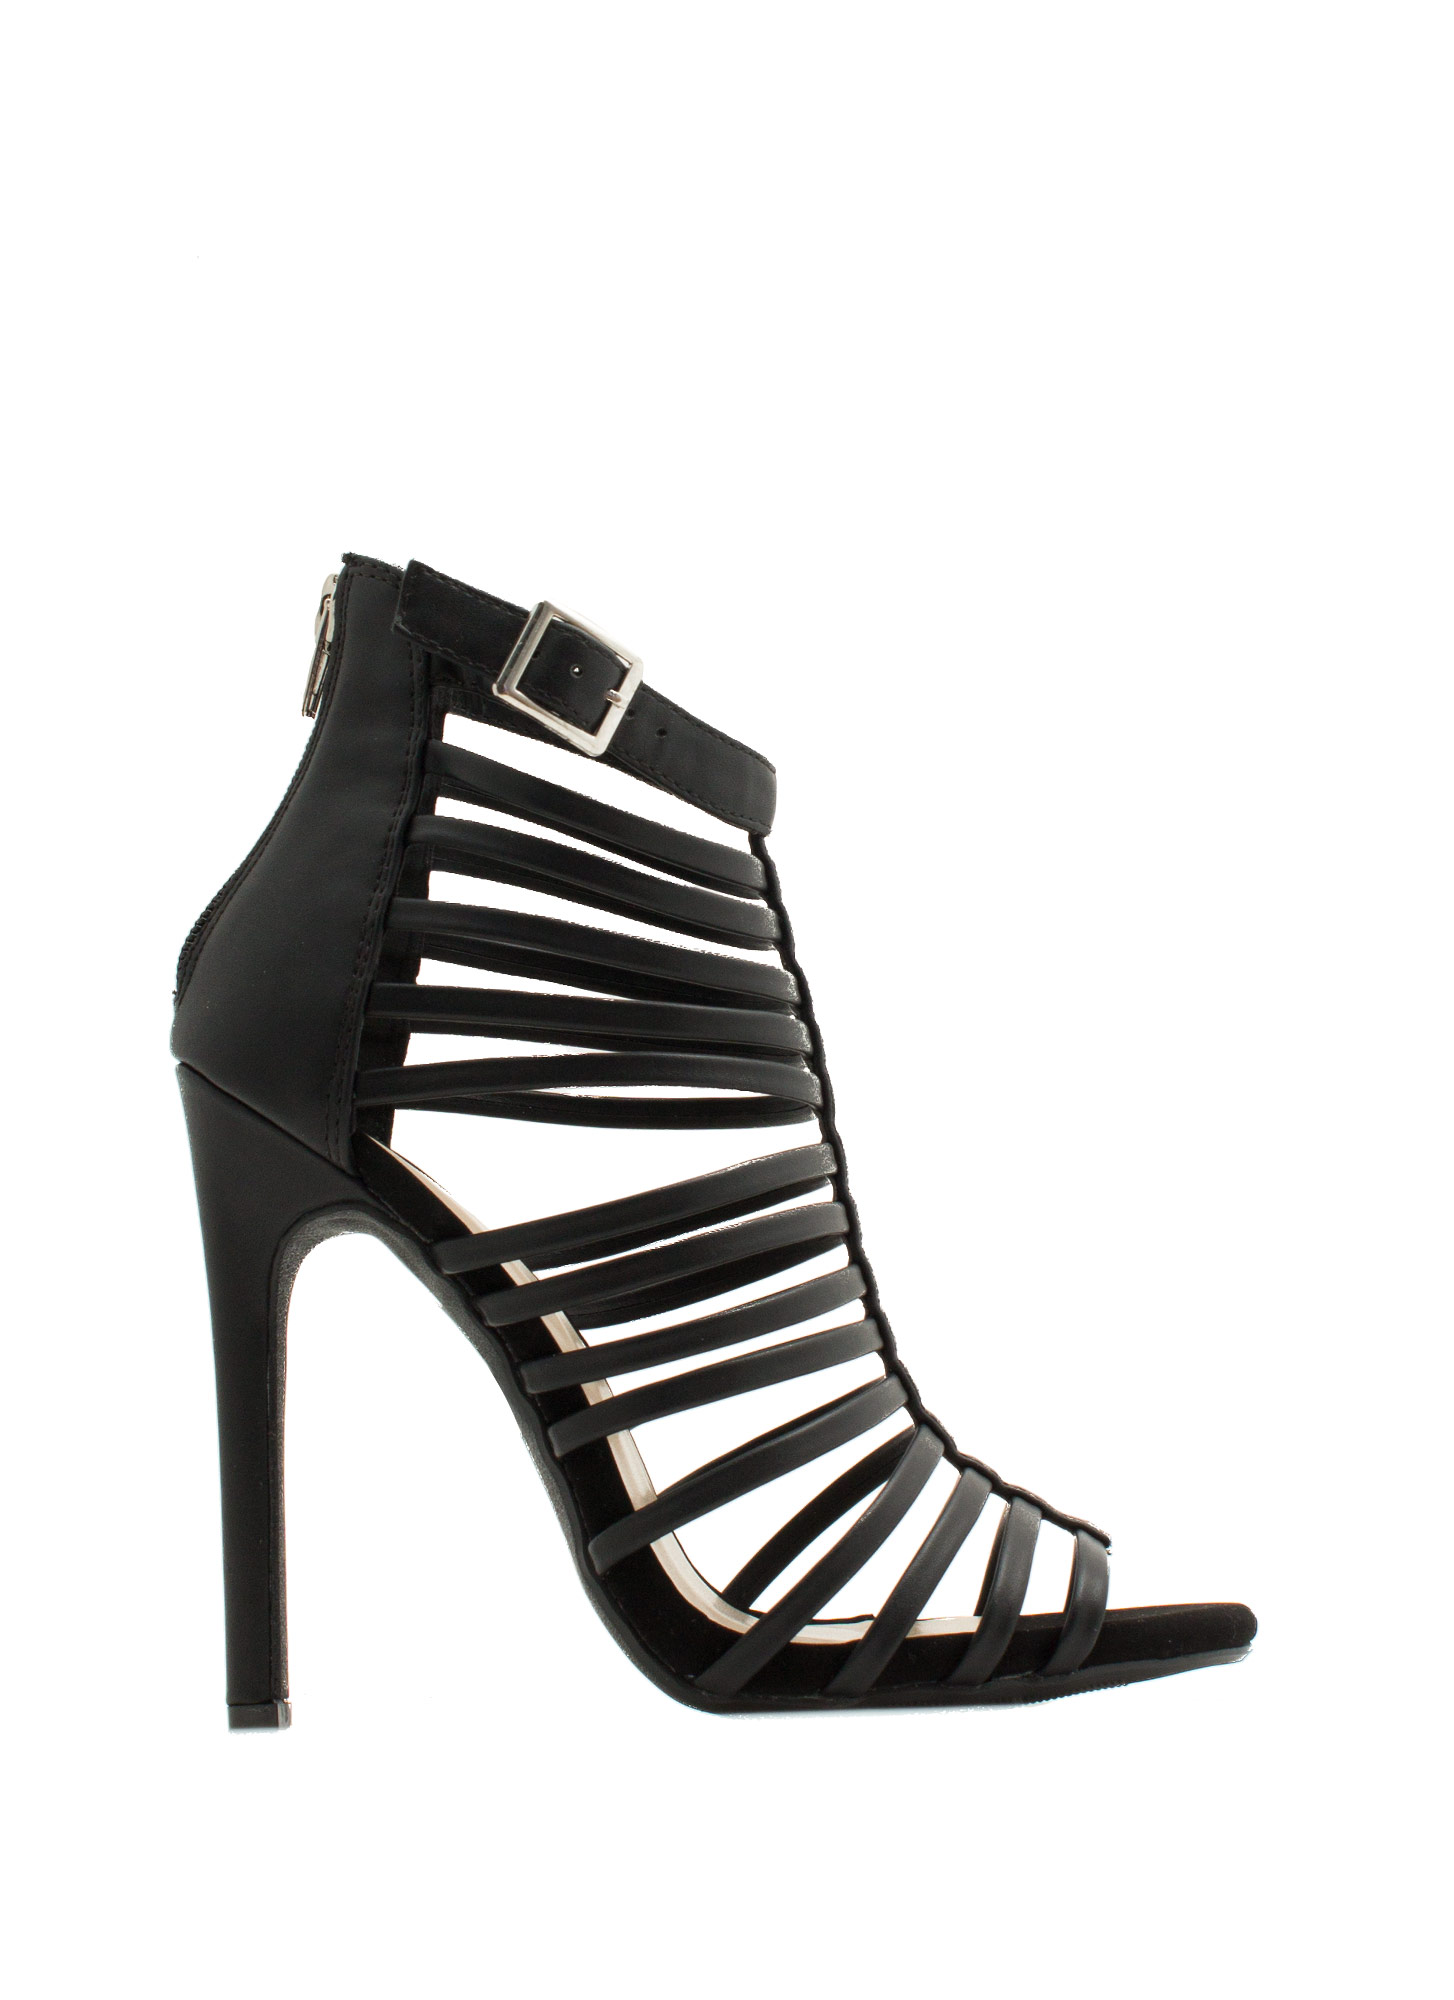 Cage Match Strappy Heels BLACK